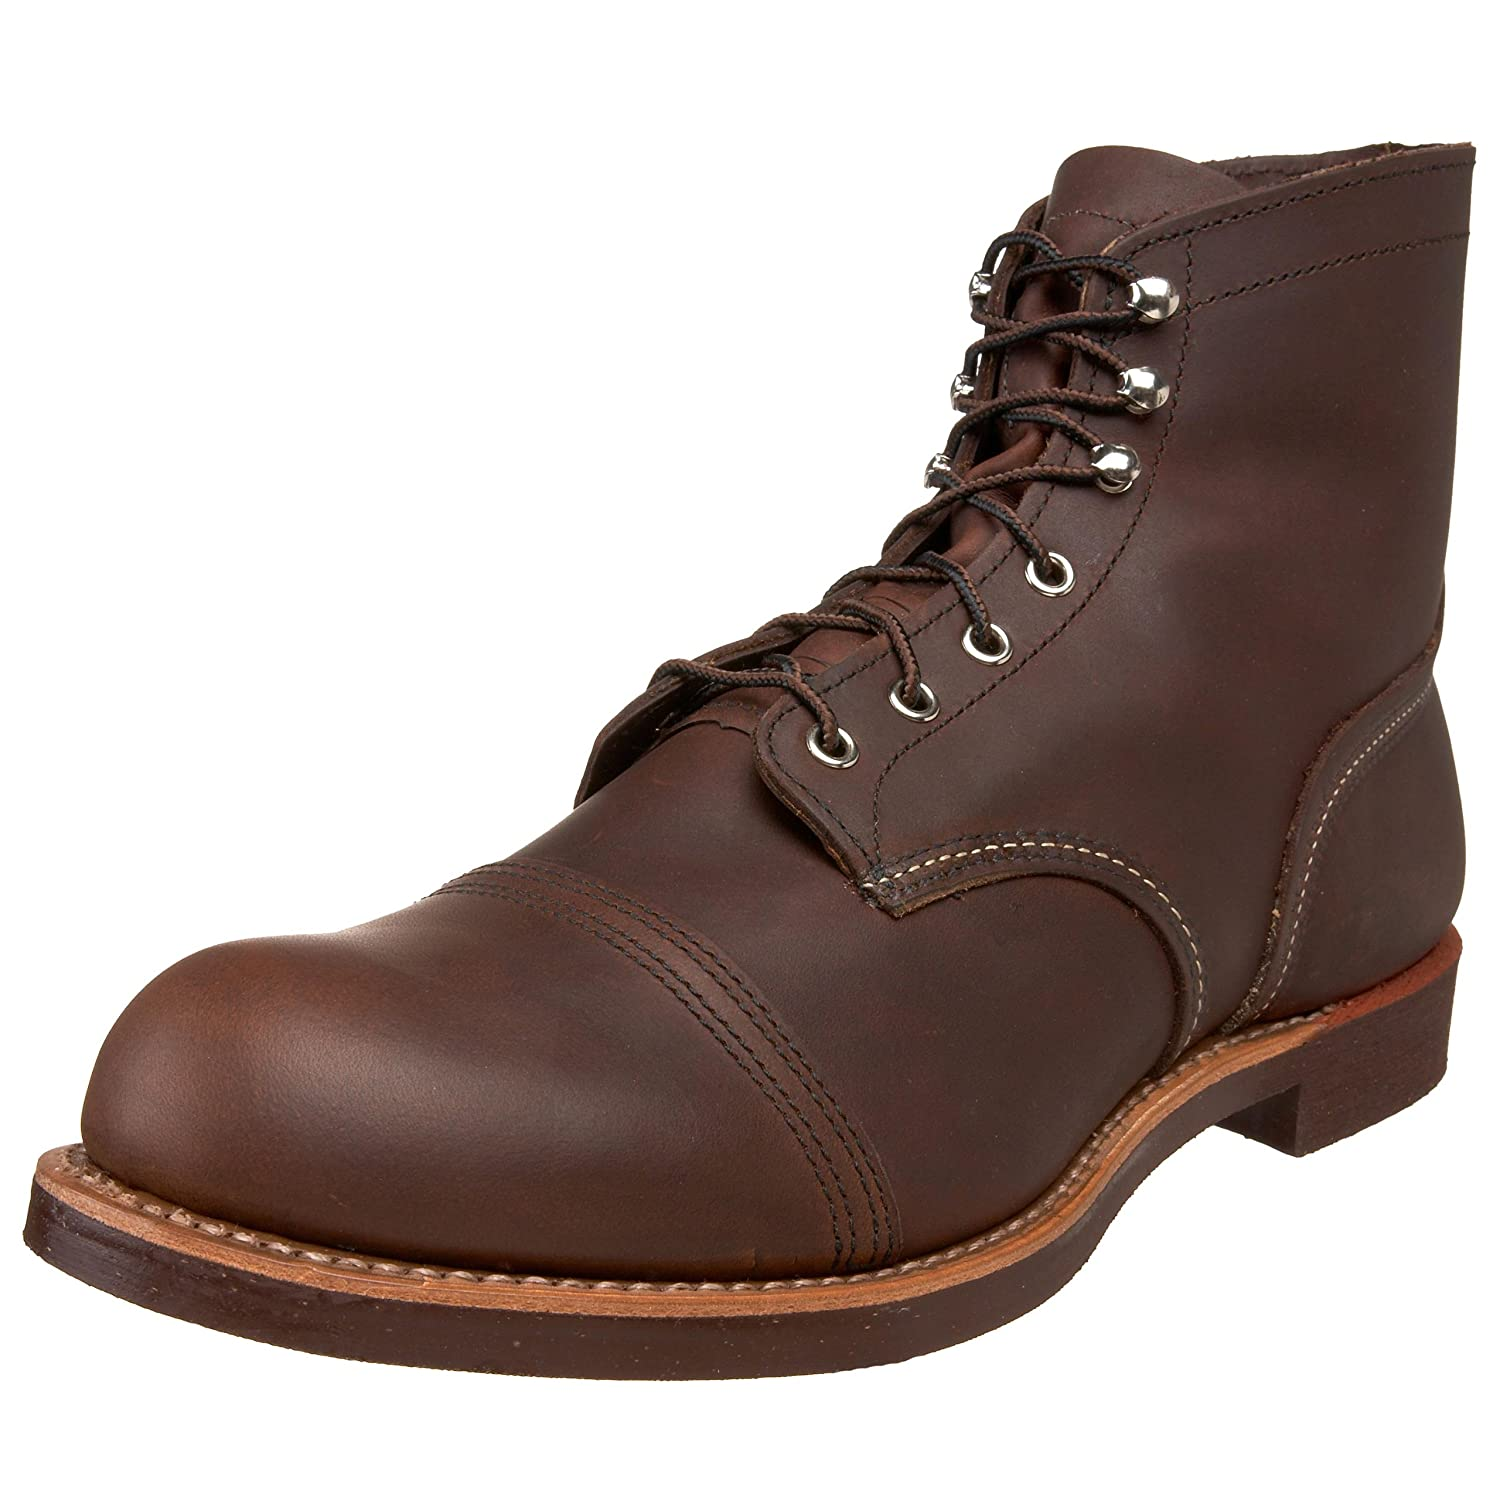 Men's 1920s Shoes History and Buying Guide Red Wing Heritage Iron Ranger 6-Inch Boot $239.96 AT vintagedancer.com